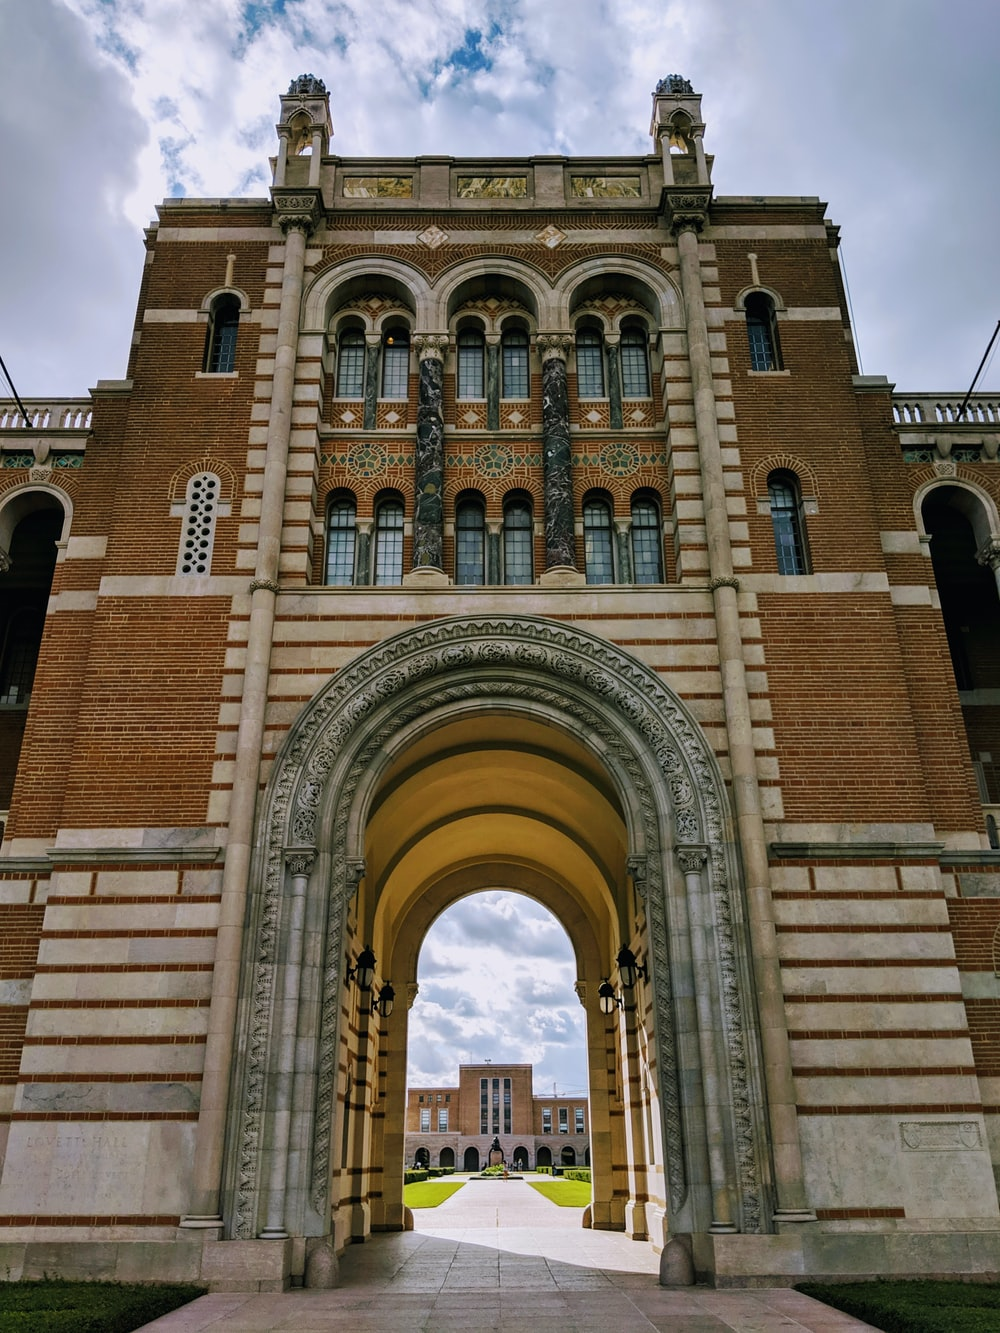 brown and white concrete arch building under dramatic clouds during daytime